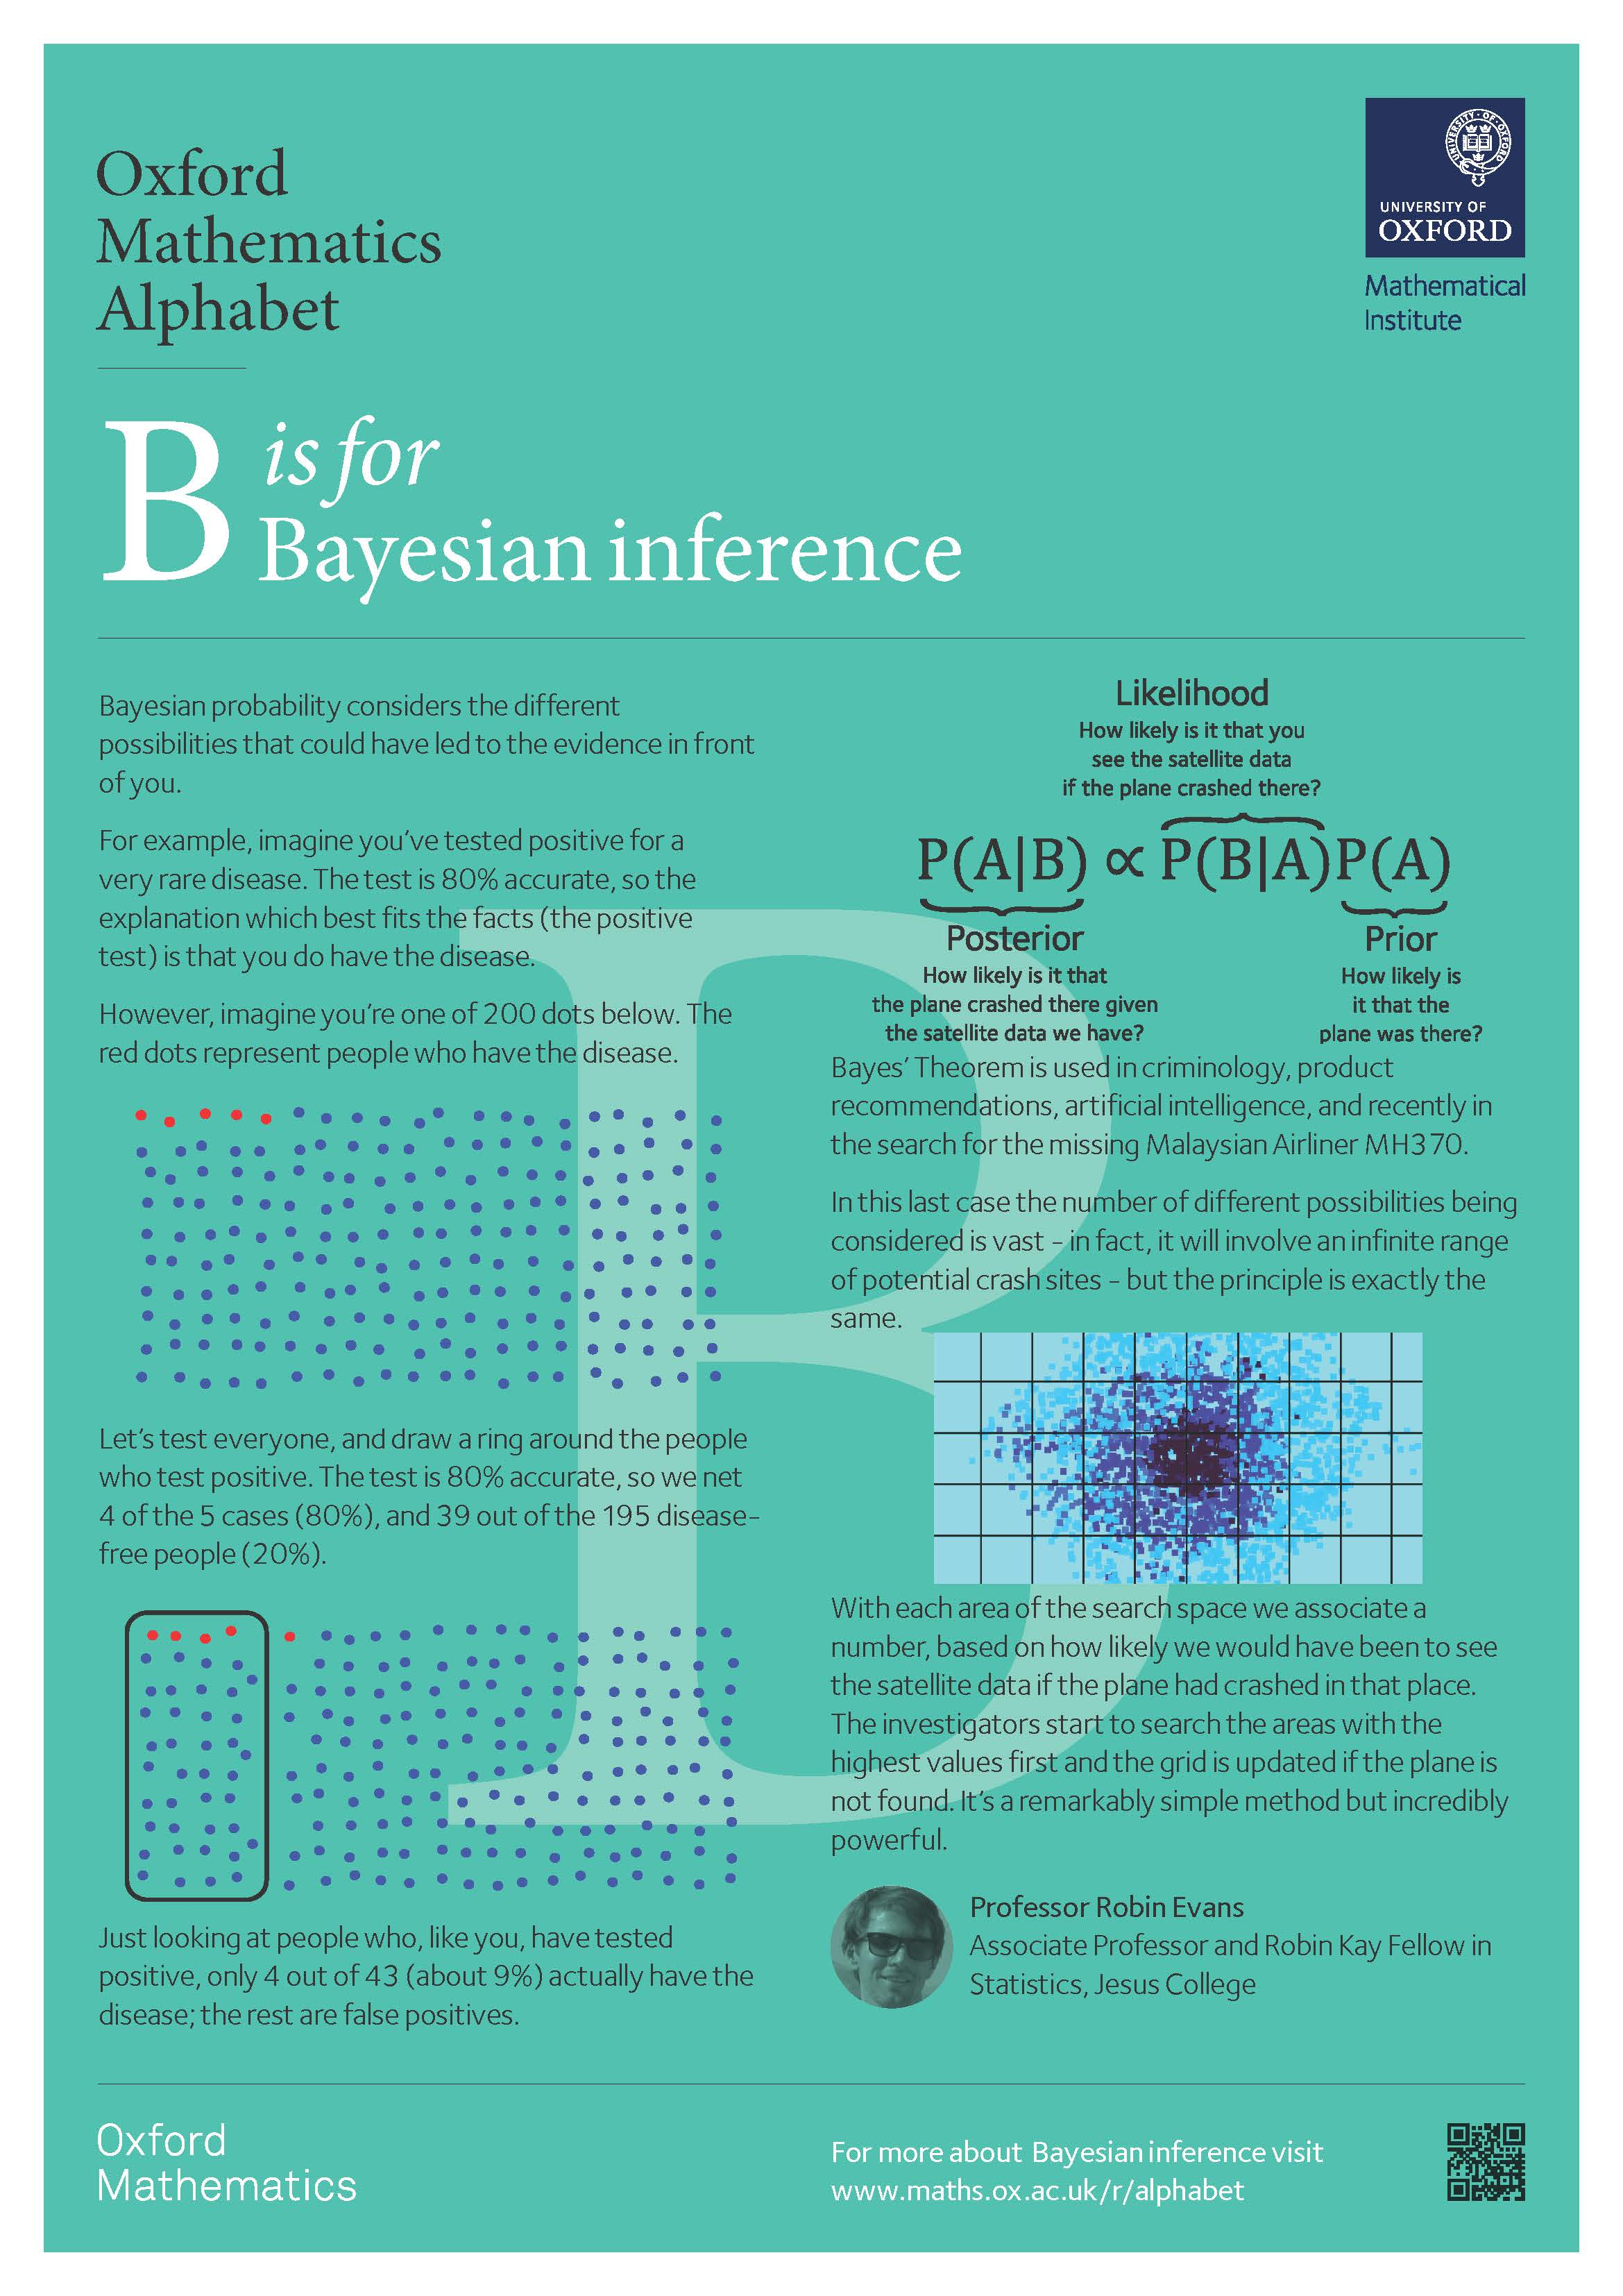 B is for Bayesian Inference | Mathematical Institute